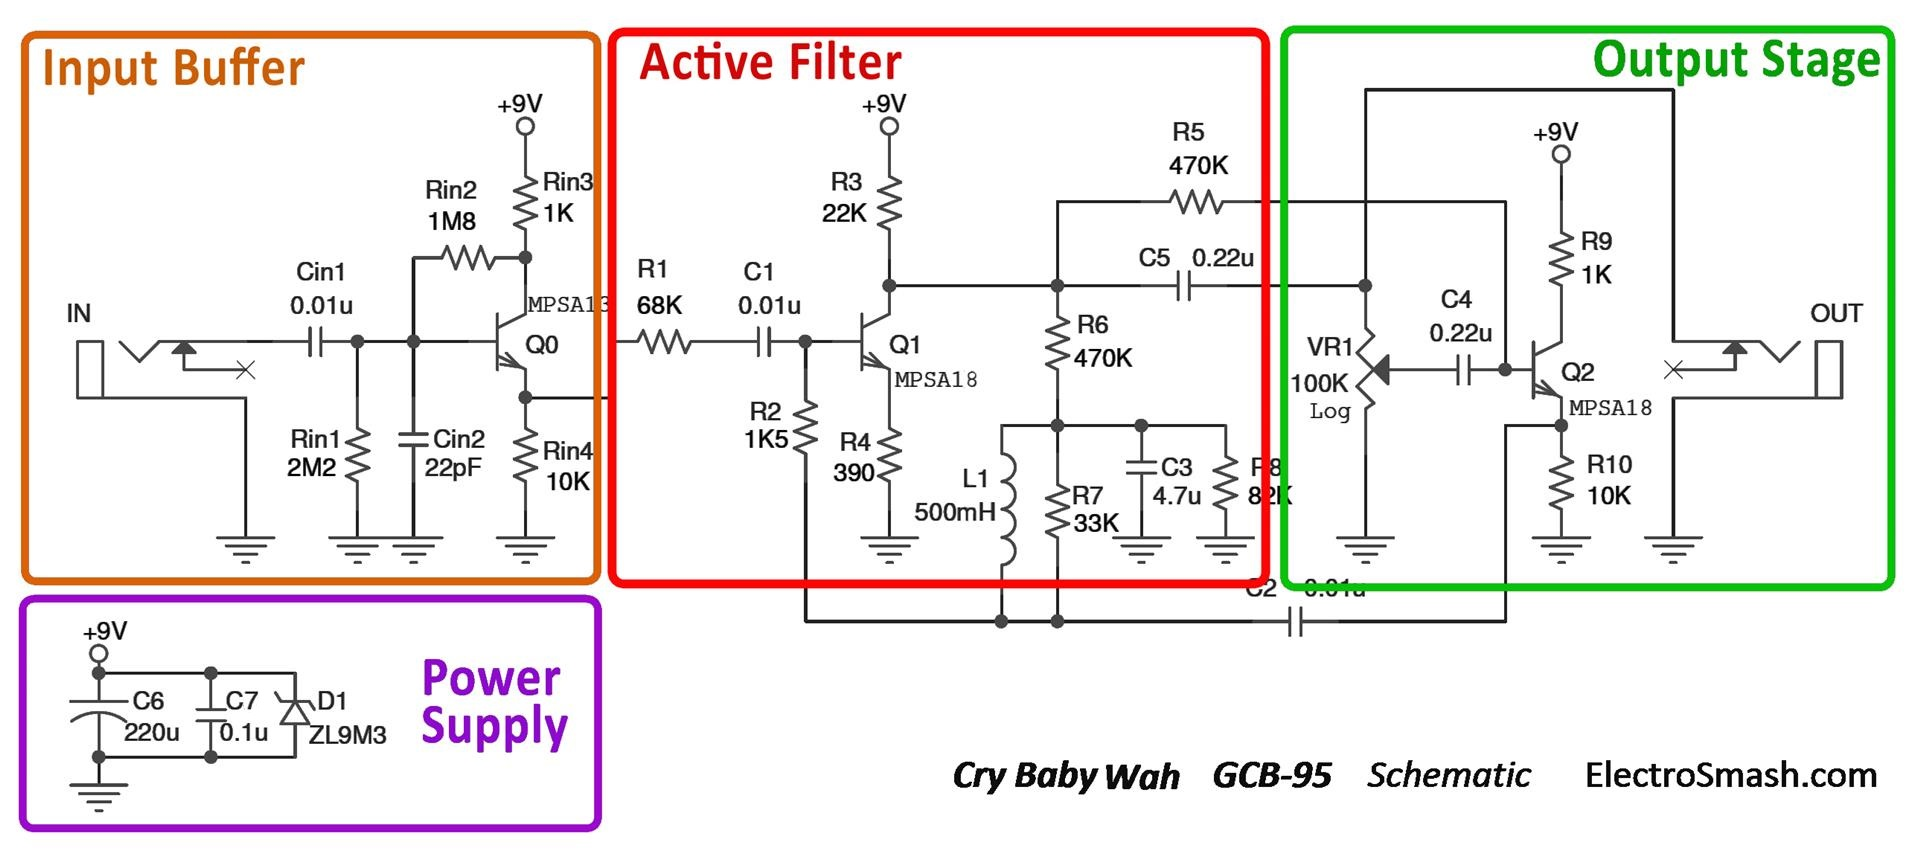 cry baby wah gcb 95 schematic parts electrosmash dunlop crybaby gcb 95 circuit analysis crybaby gcb-95 wiring diagram at nearapp.co